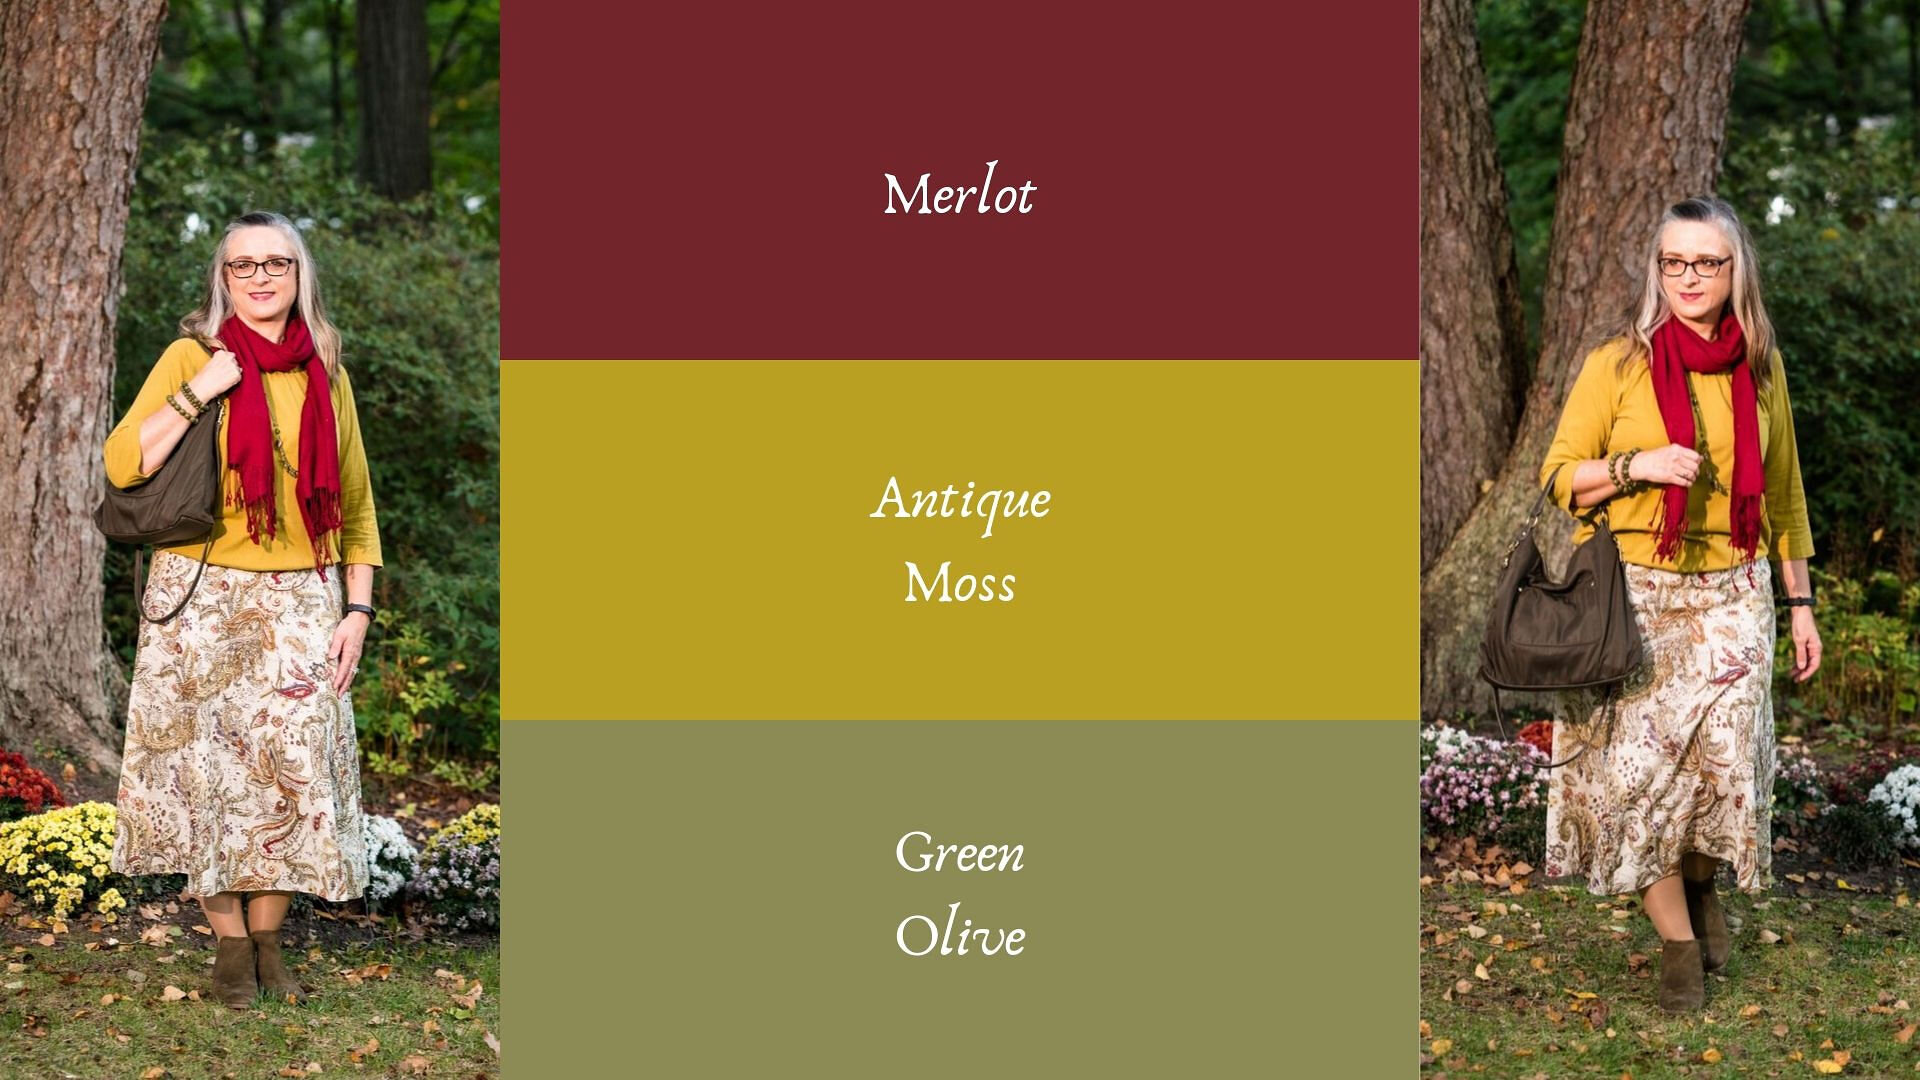 Pantone - Autumn/Winter - 2019 - Merlot and Antique Moss